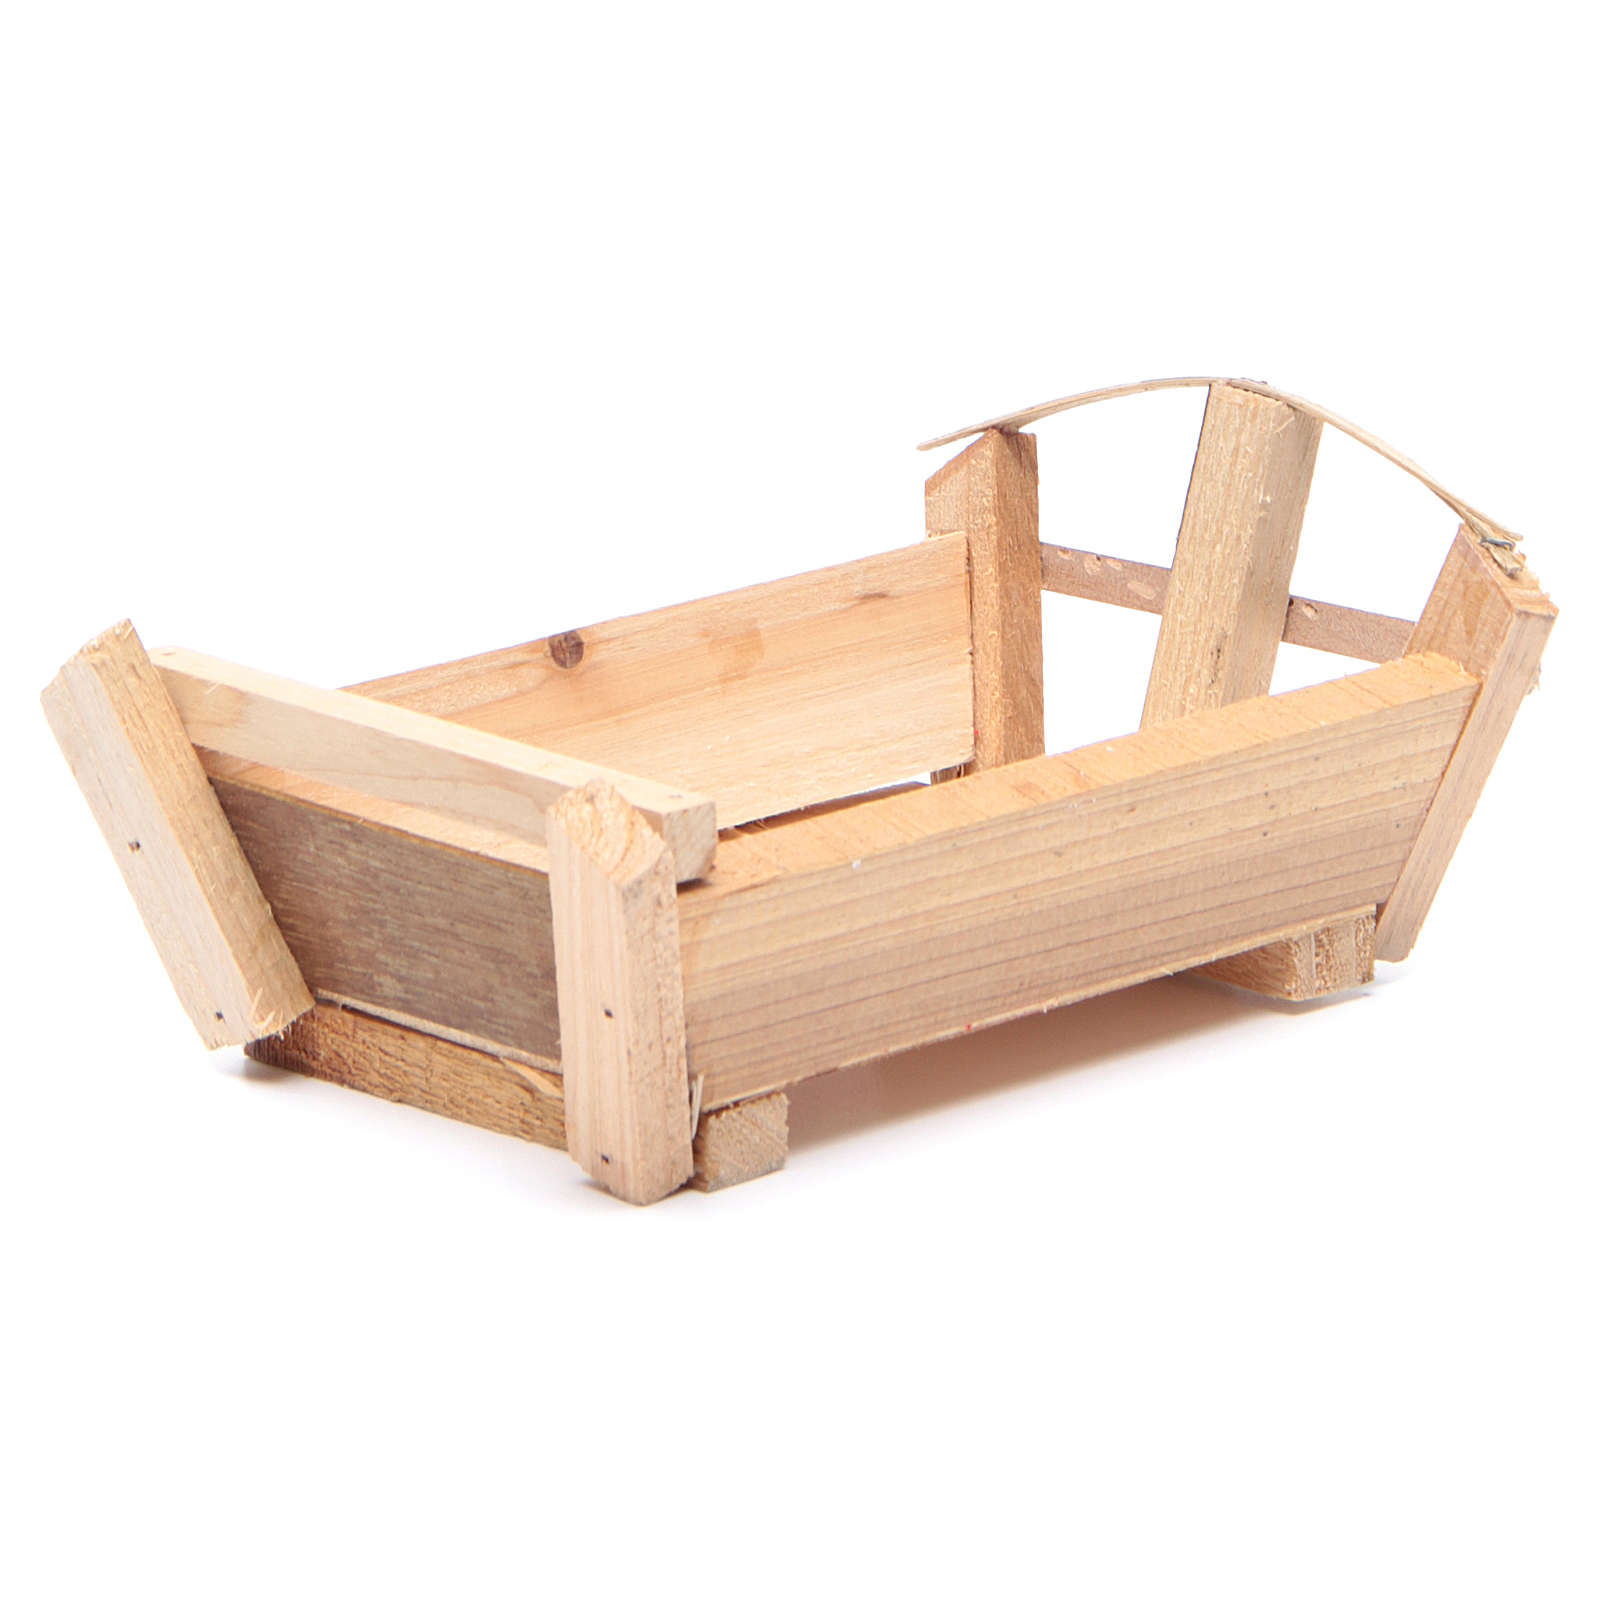 Nativity accessory, cradle in wood for Baby Jesus 9x18x12cm 3